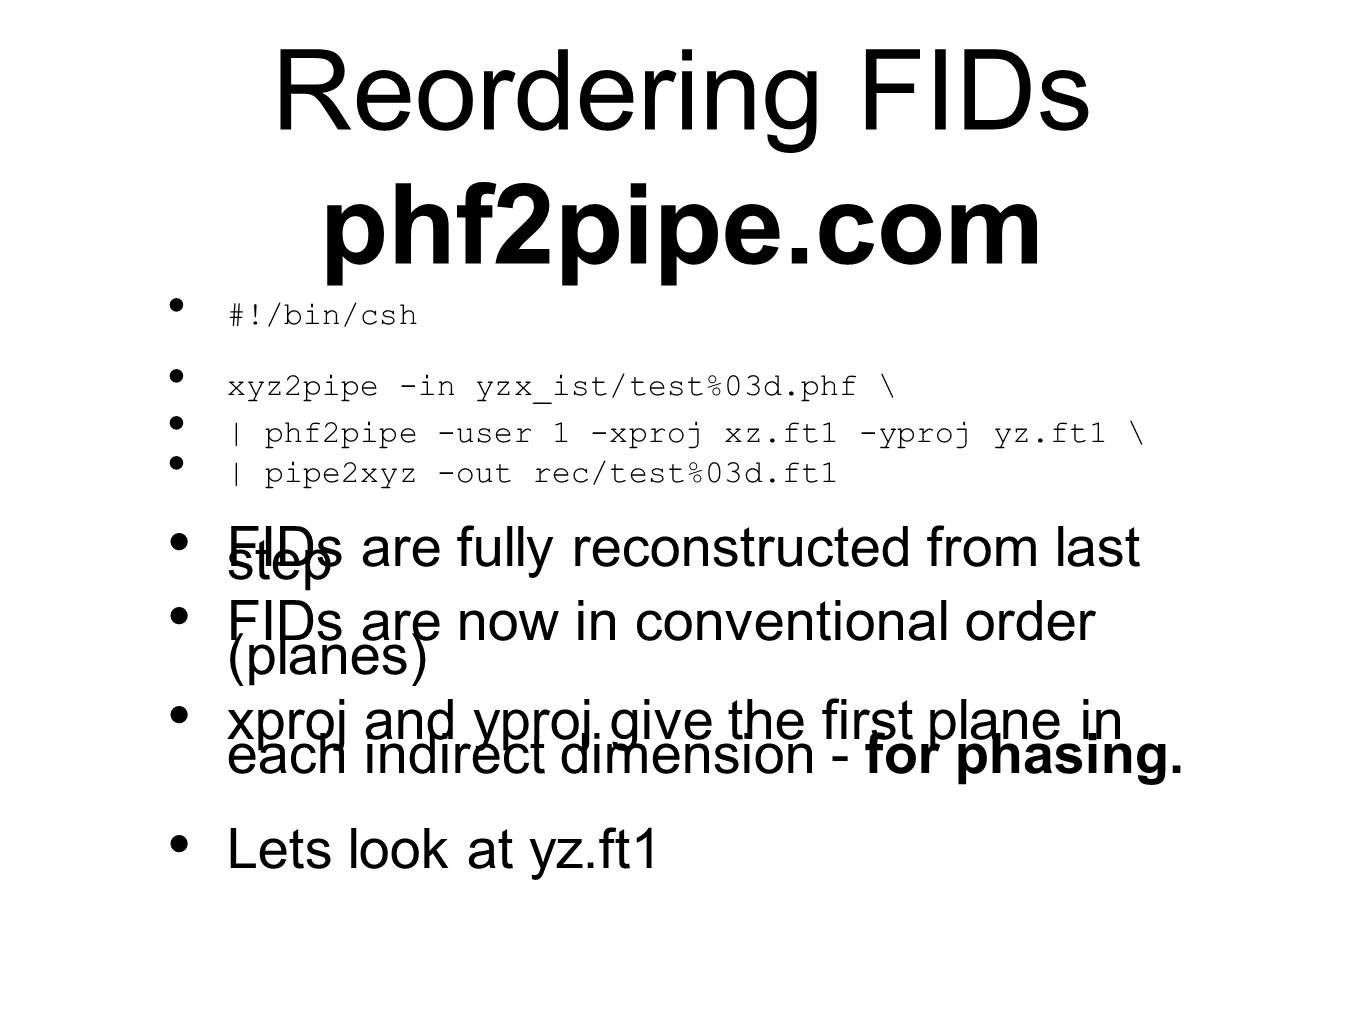 Reordering FIDs phf2pipe.com